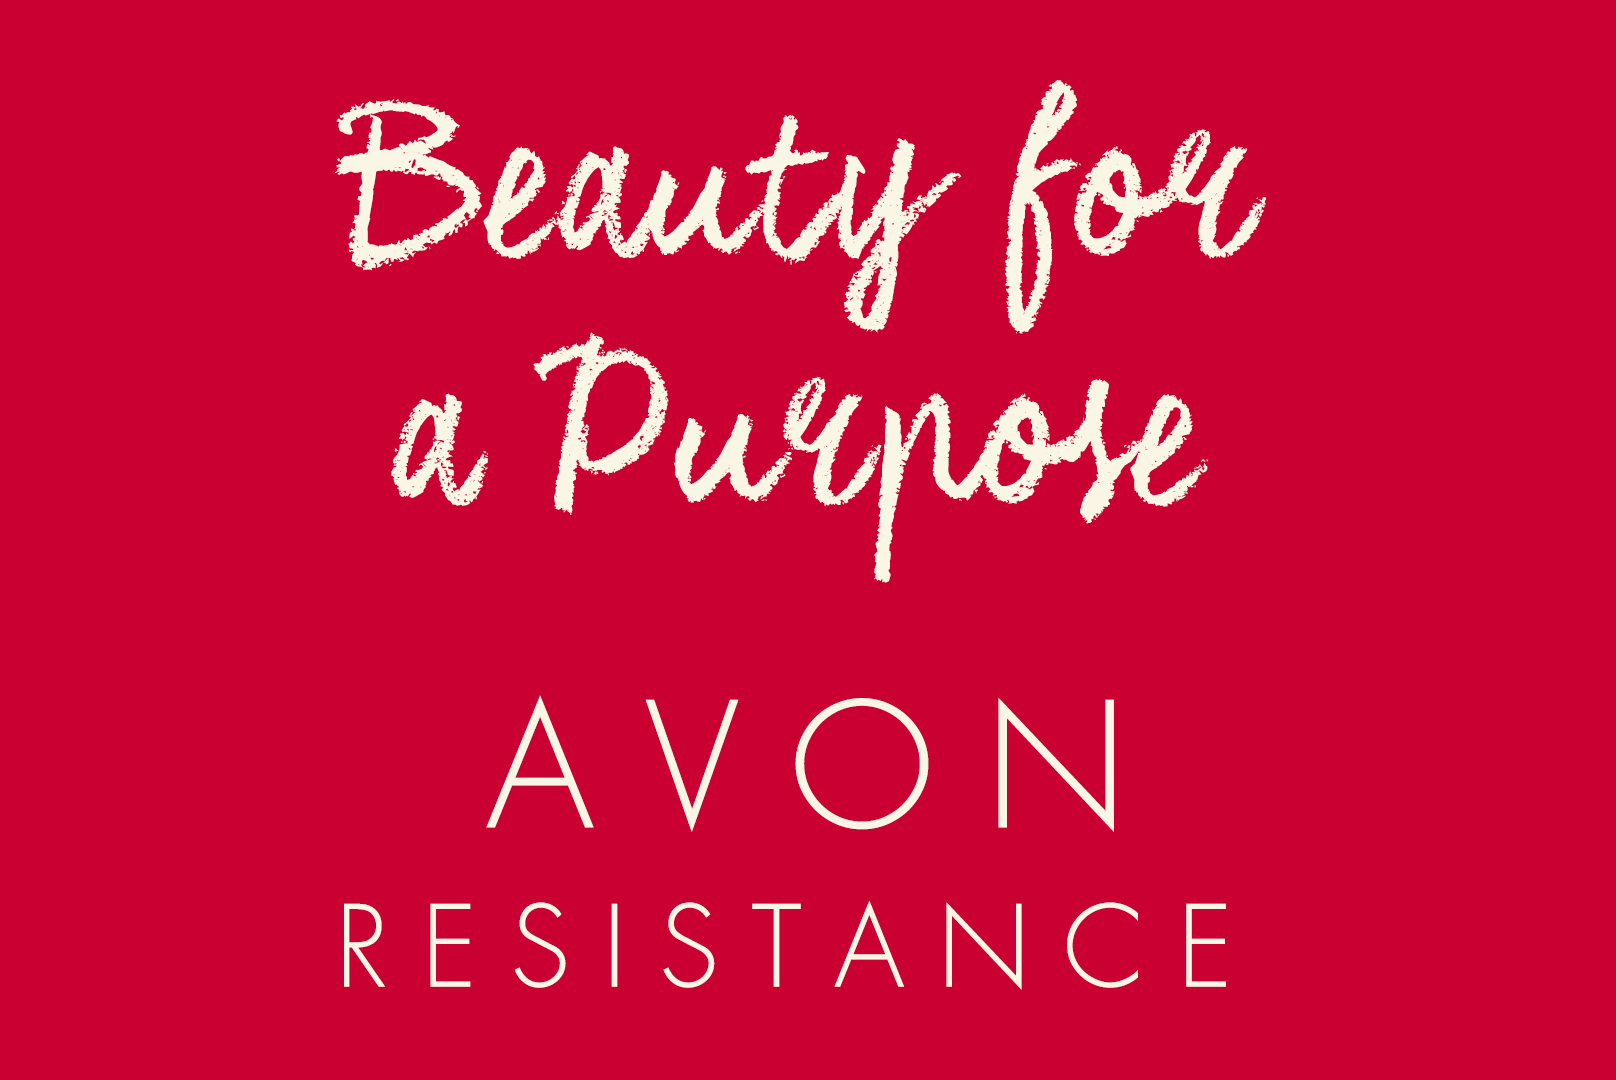 Join the Resistance at Avon